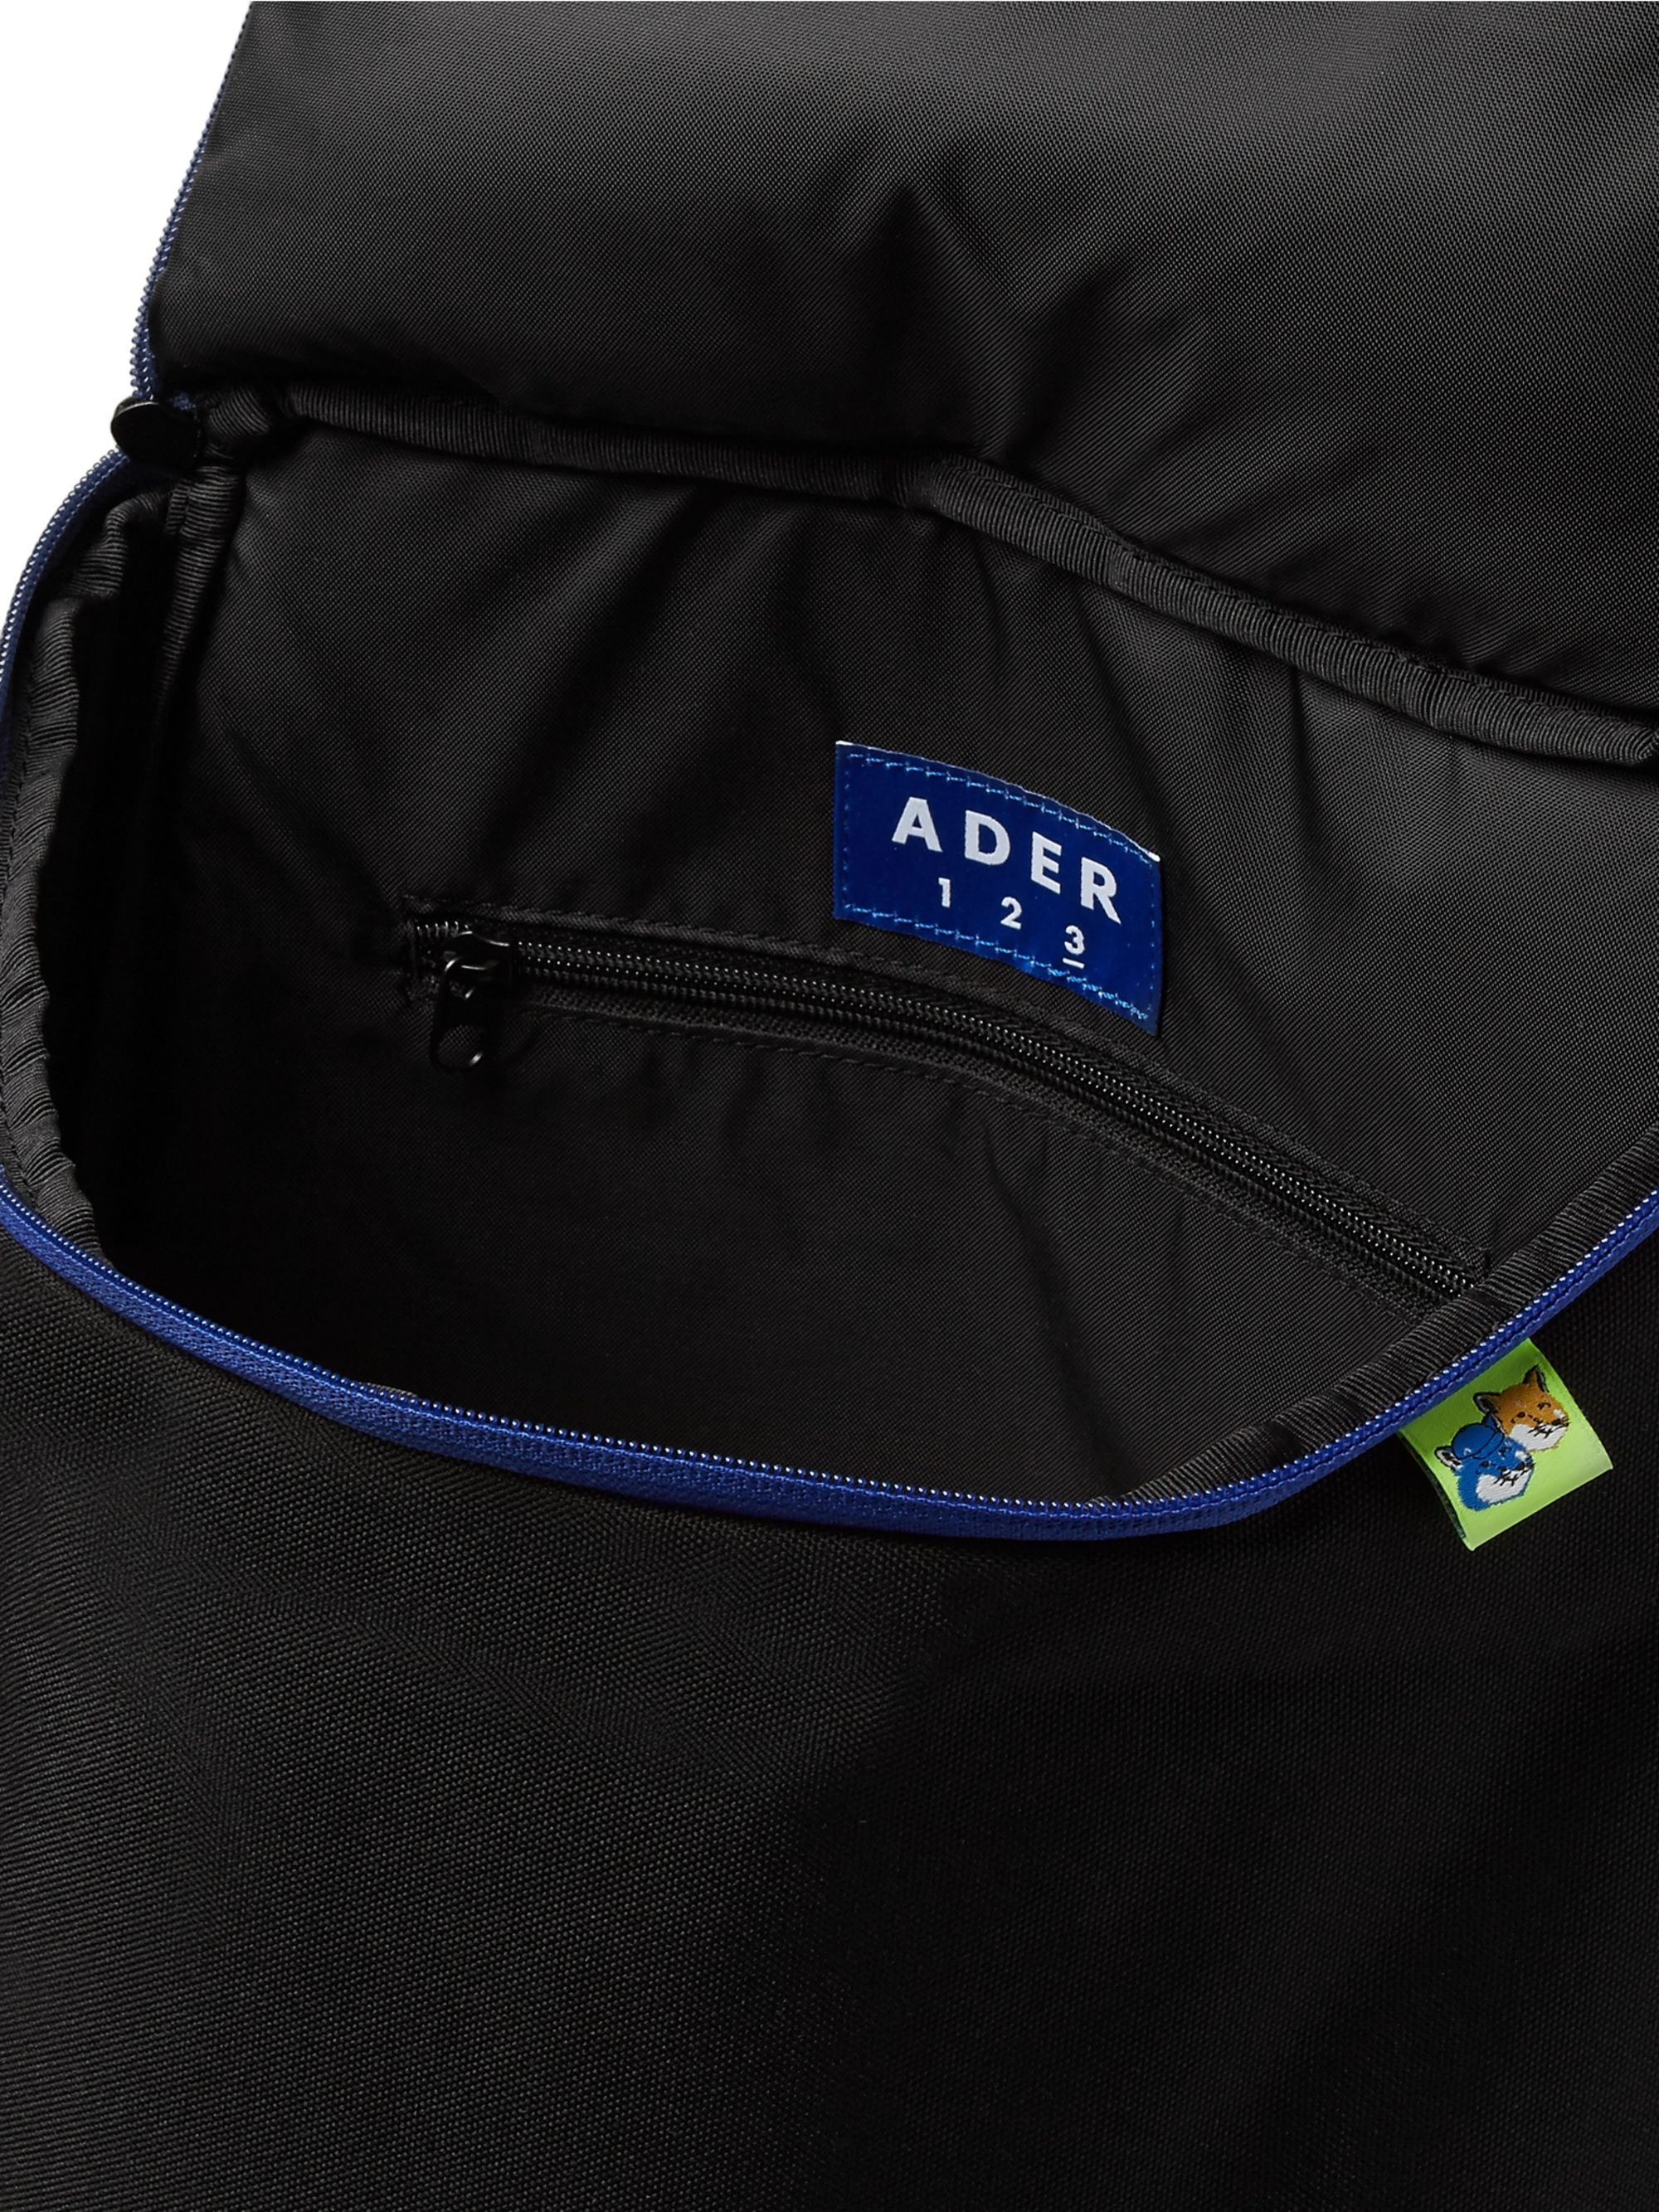 Maison Kitsuné + ADER error Logo-Embroidered Printed Canvas Backpack